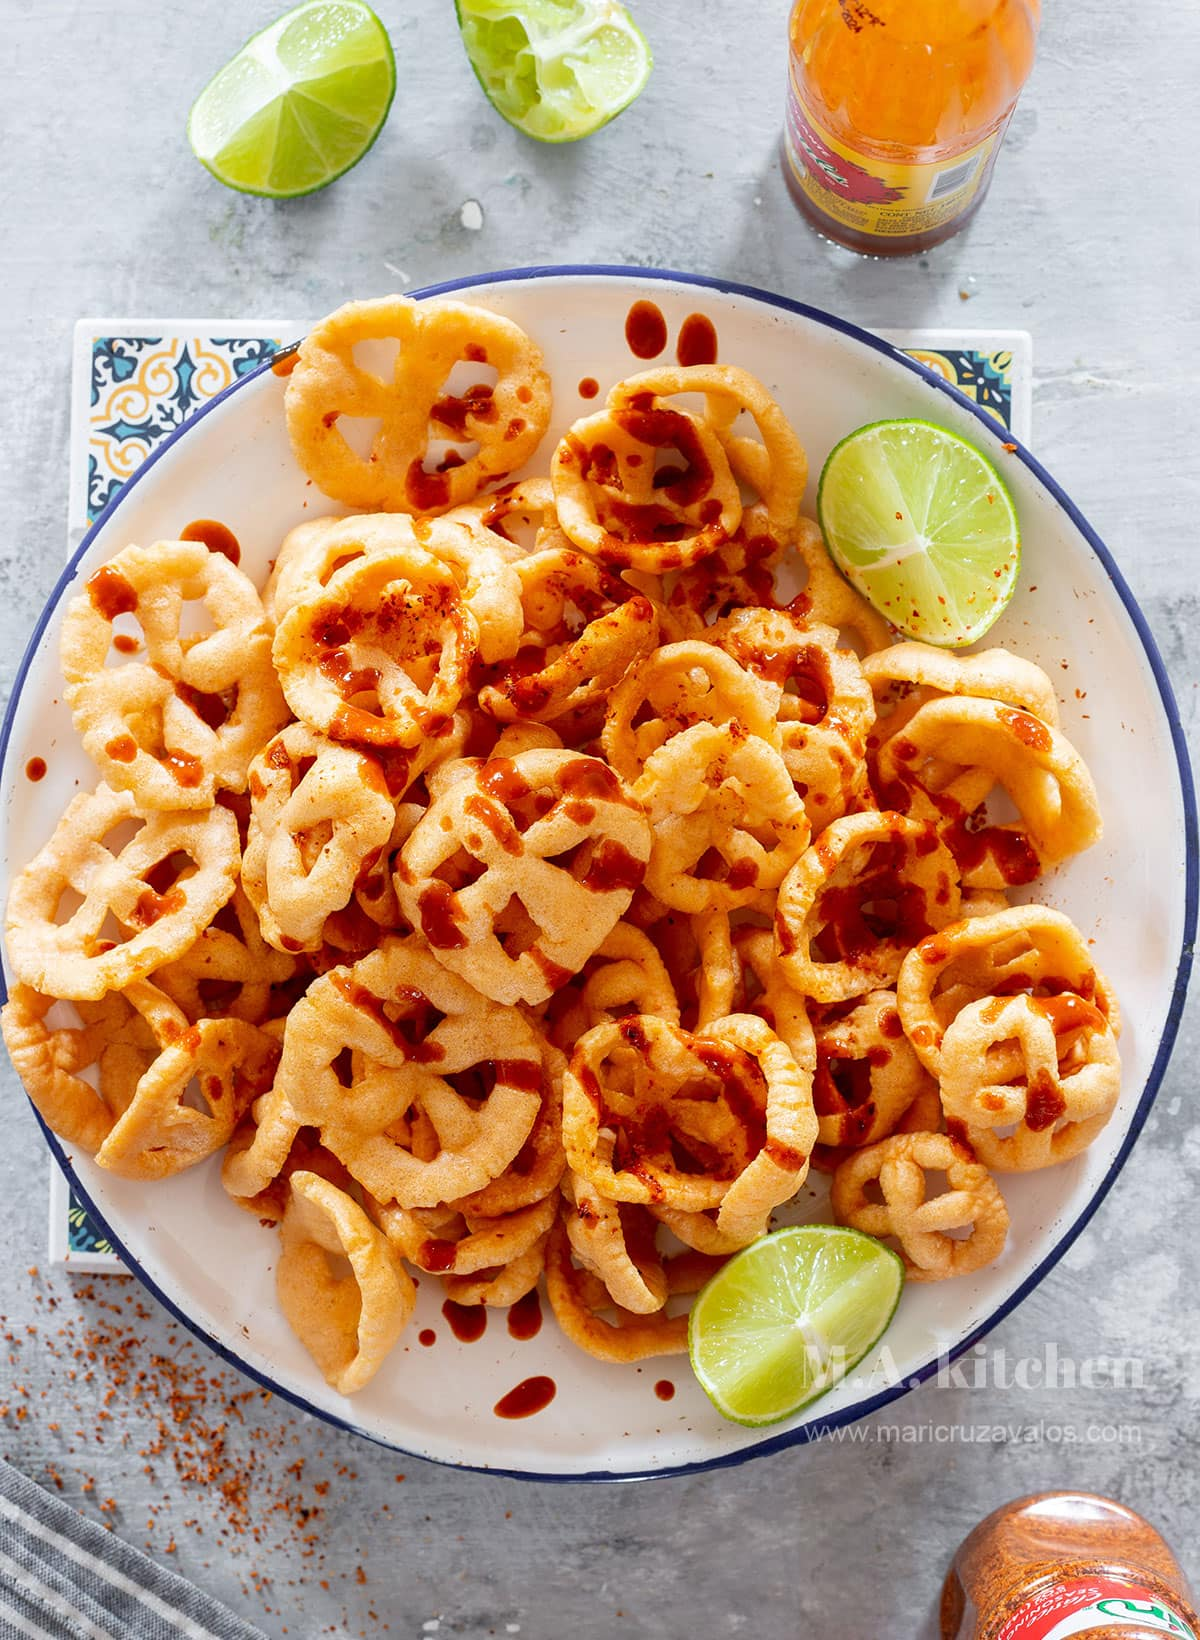 Chicharrones chips on a plate, drizzled with salsa.